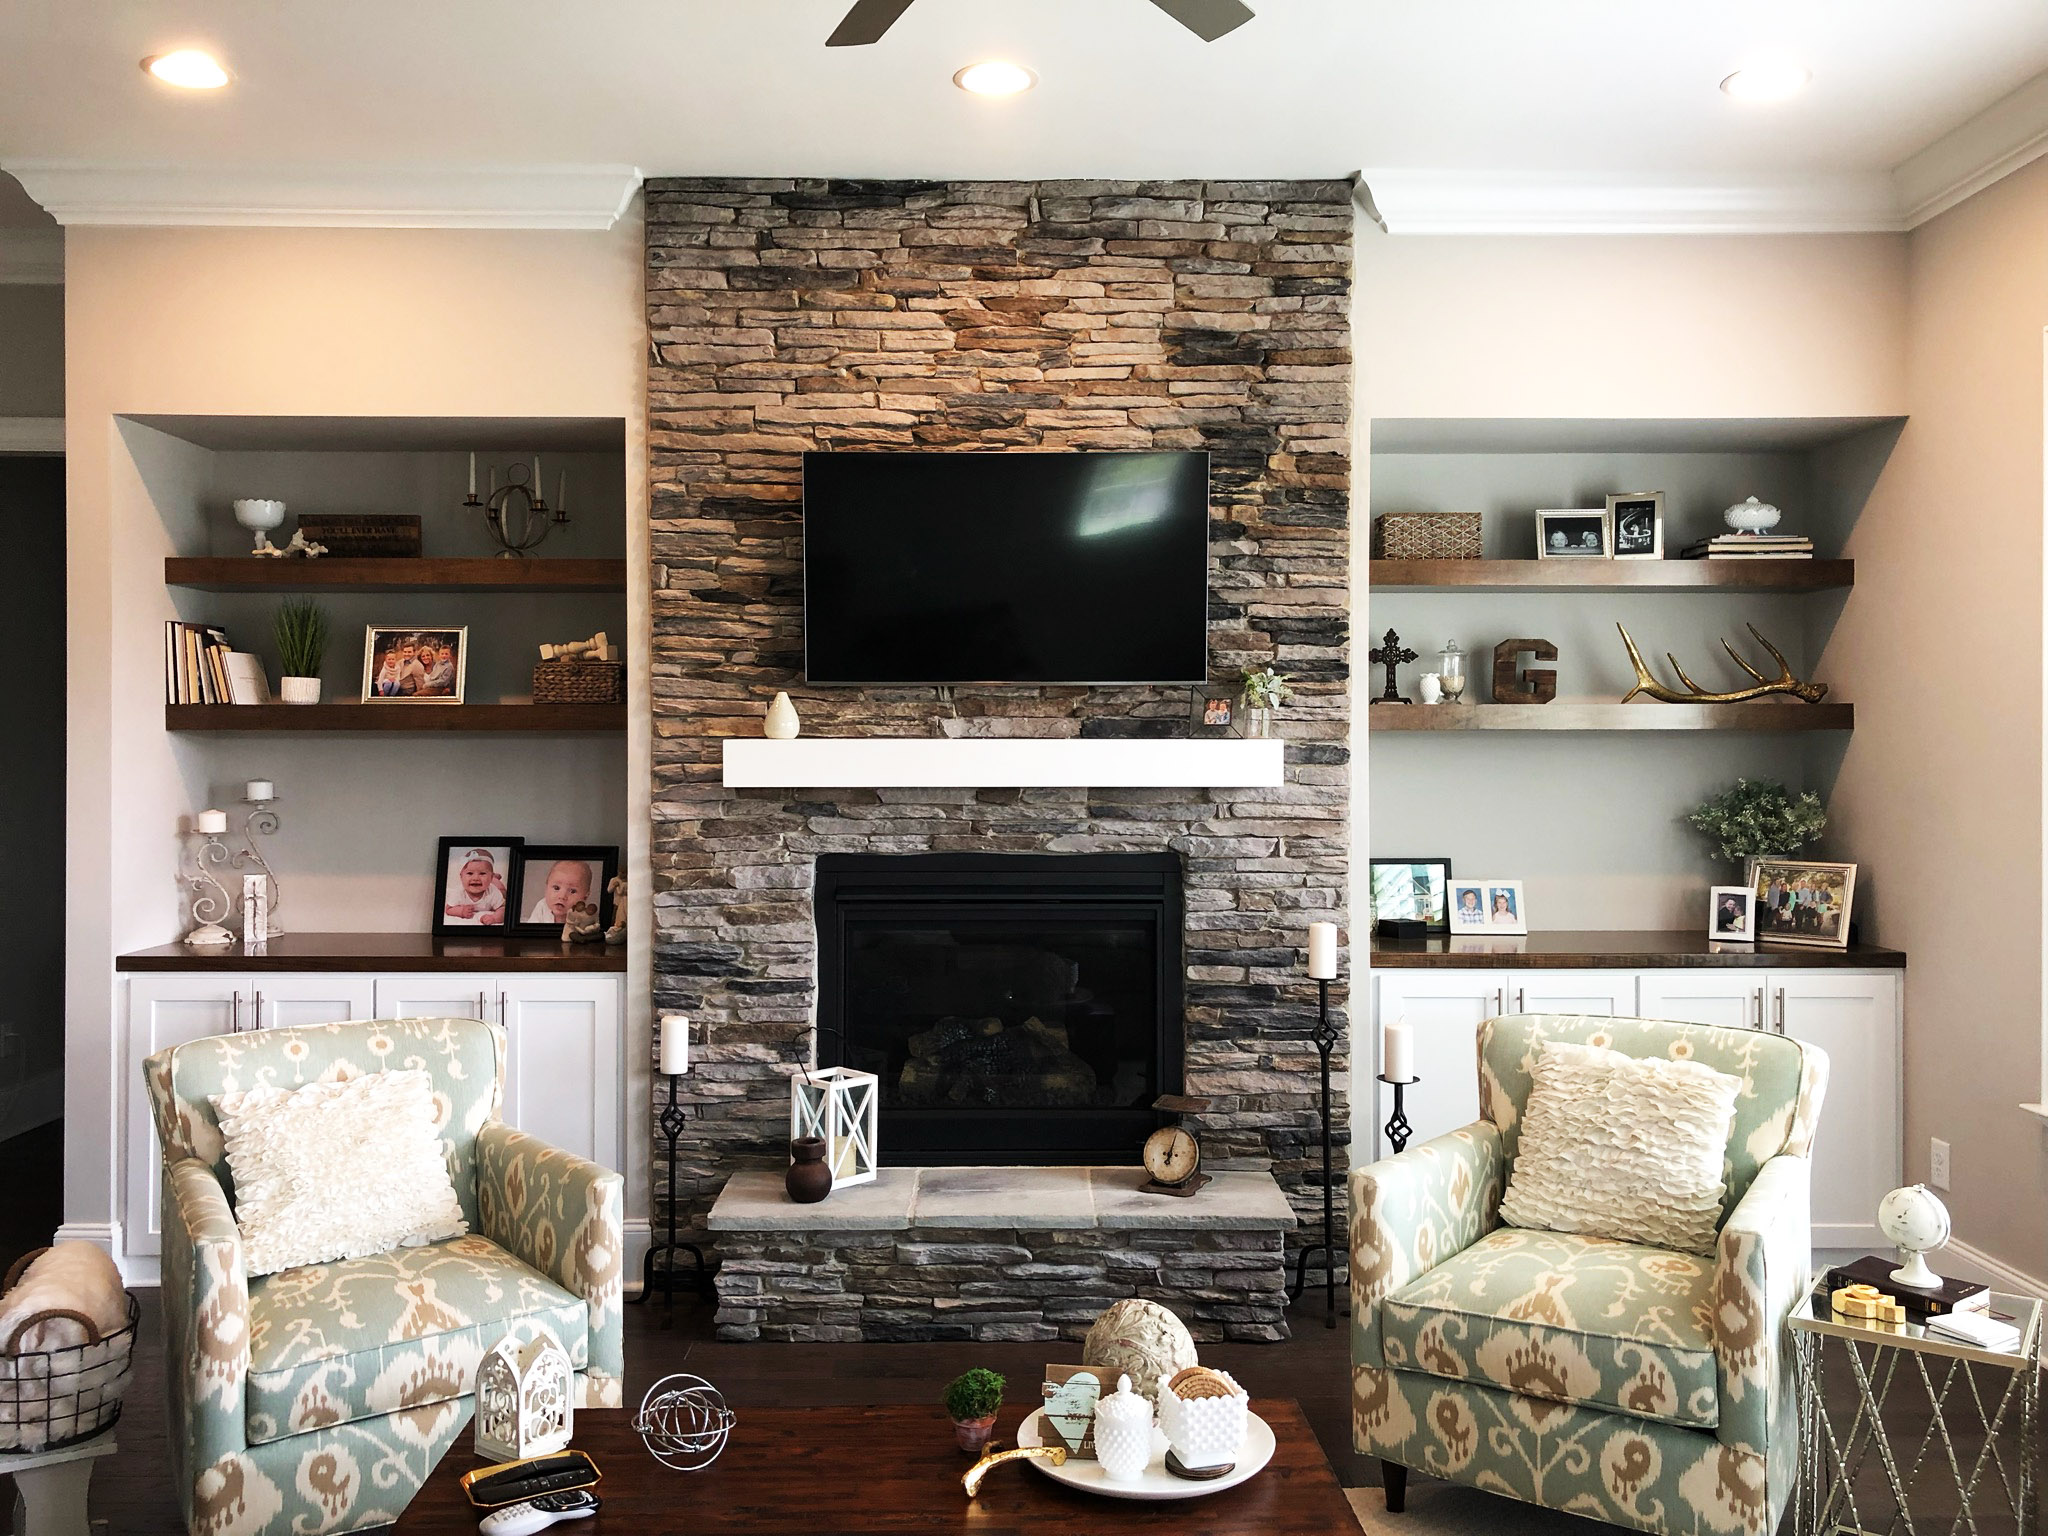 Fireplace Built-Ins with Shaker Doors, Stain Floating Shelves, and Stain Countertops